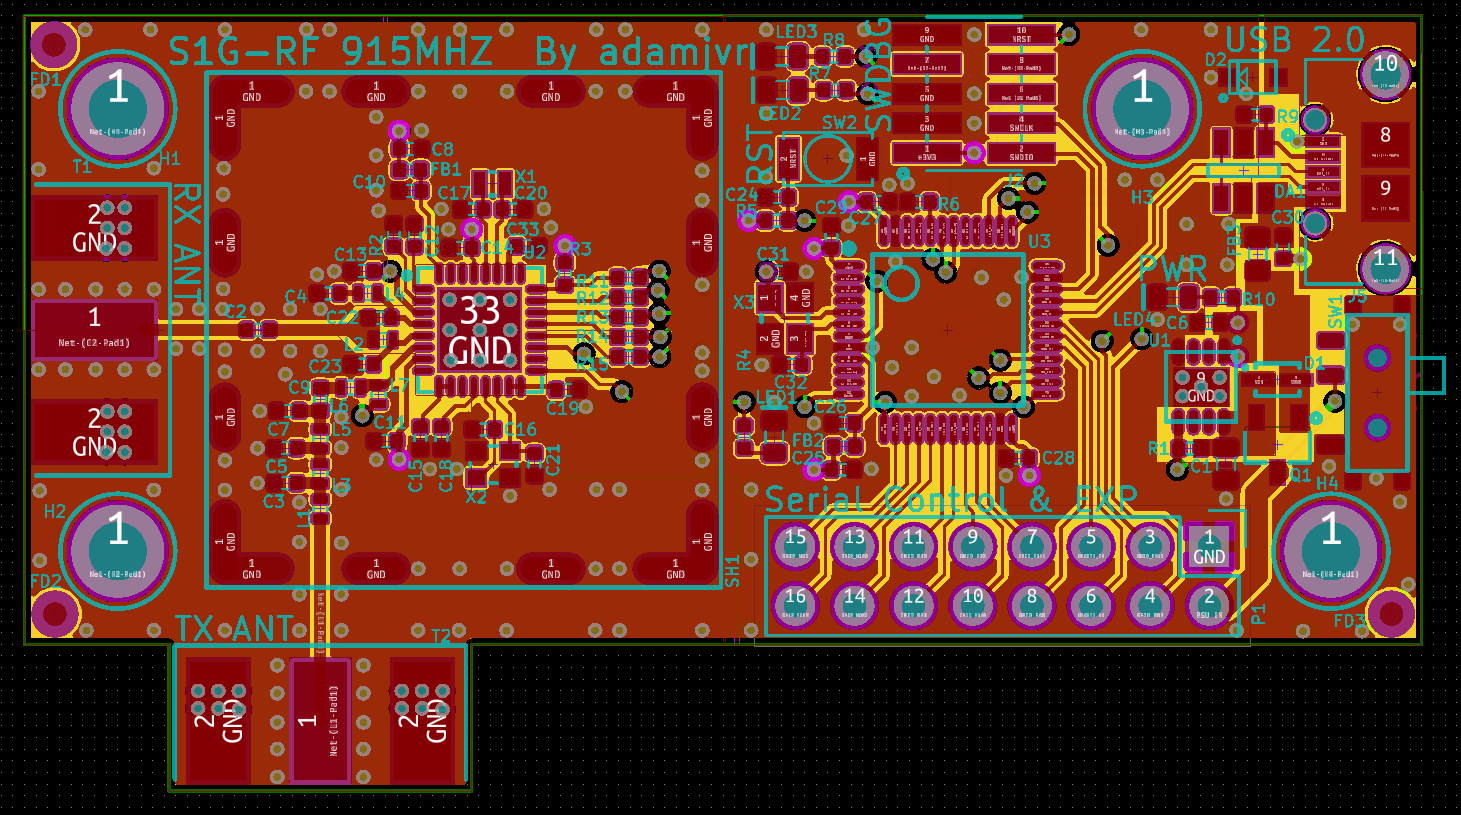 S1g Rf Sub 1ghz Radio Modules 915mhz And 433mhz Ism Transceiver Module Kicad Opengl Render